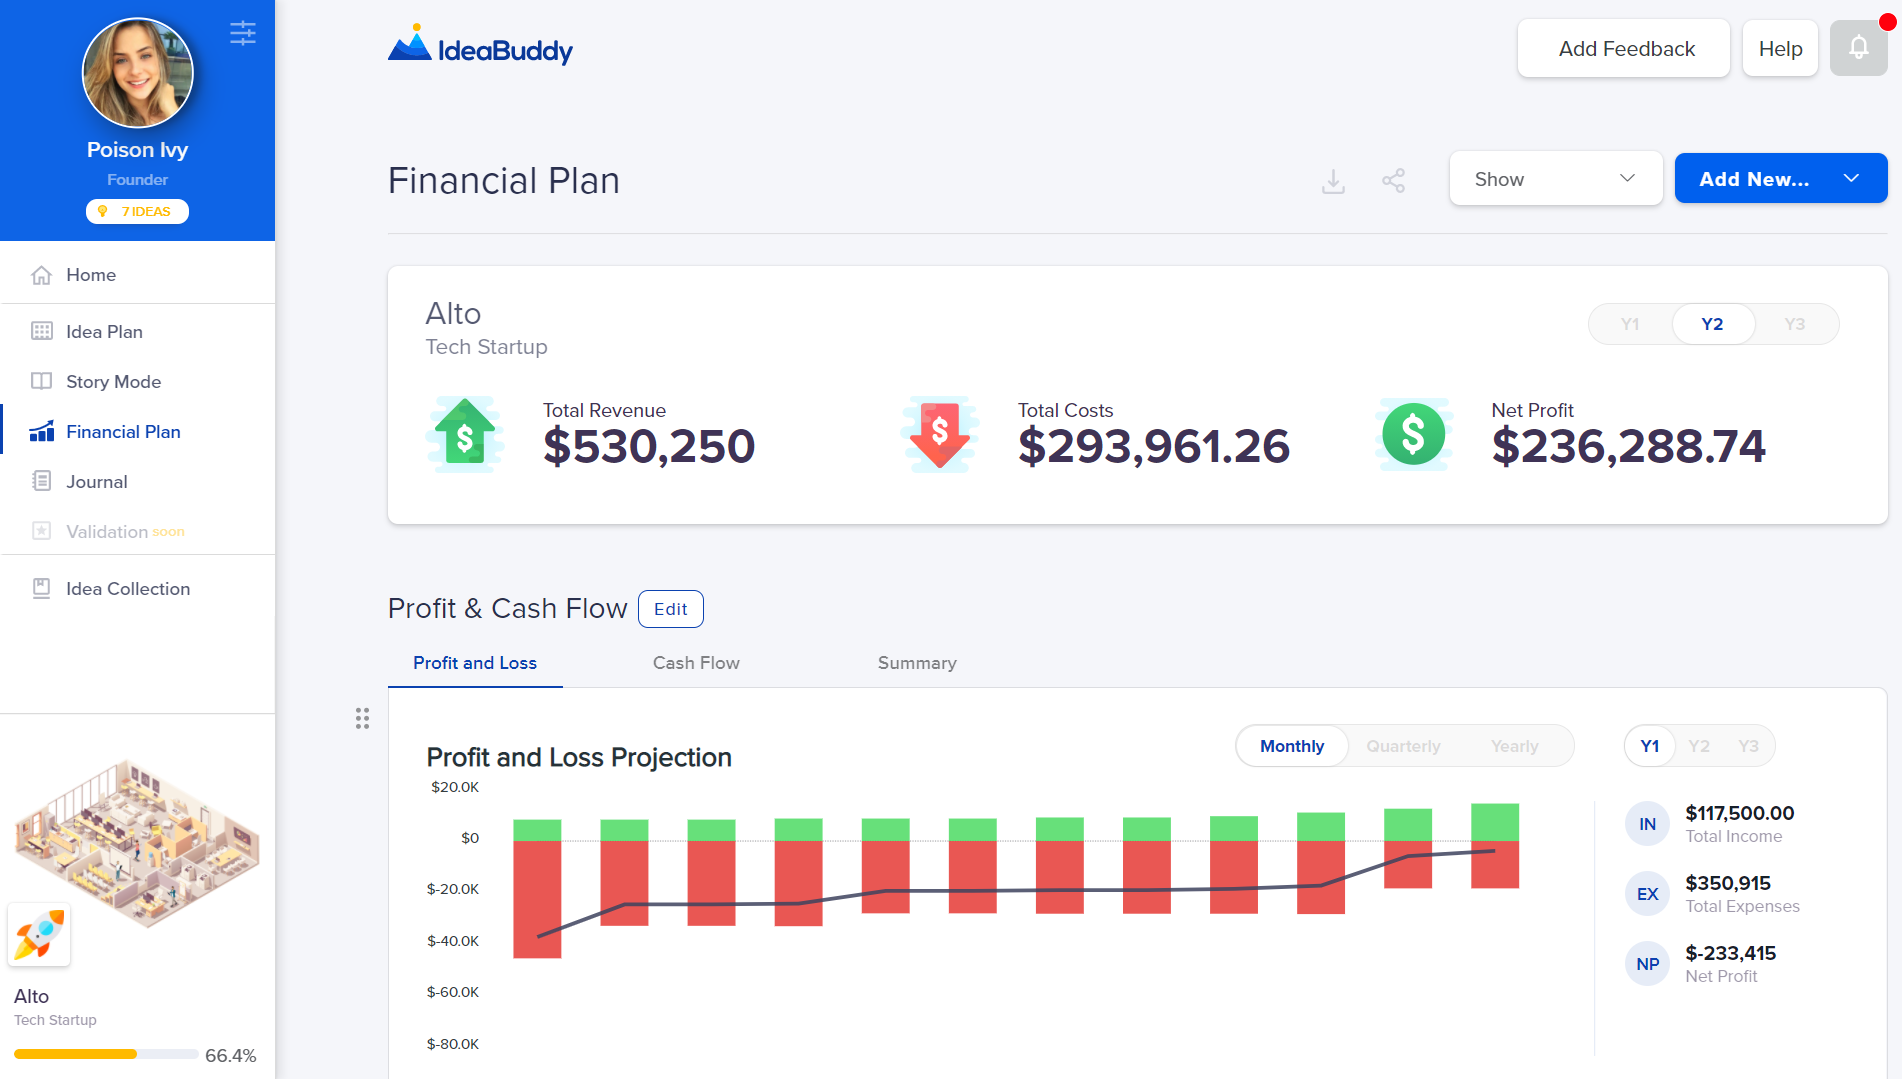 Financial Plan - snapshot from IdeaBuddy